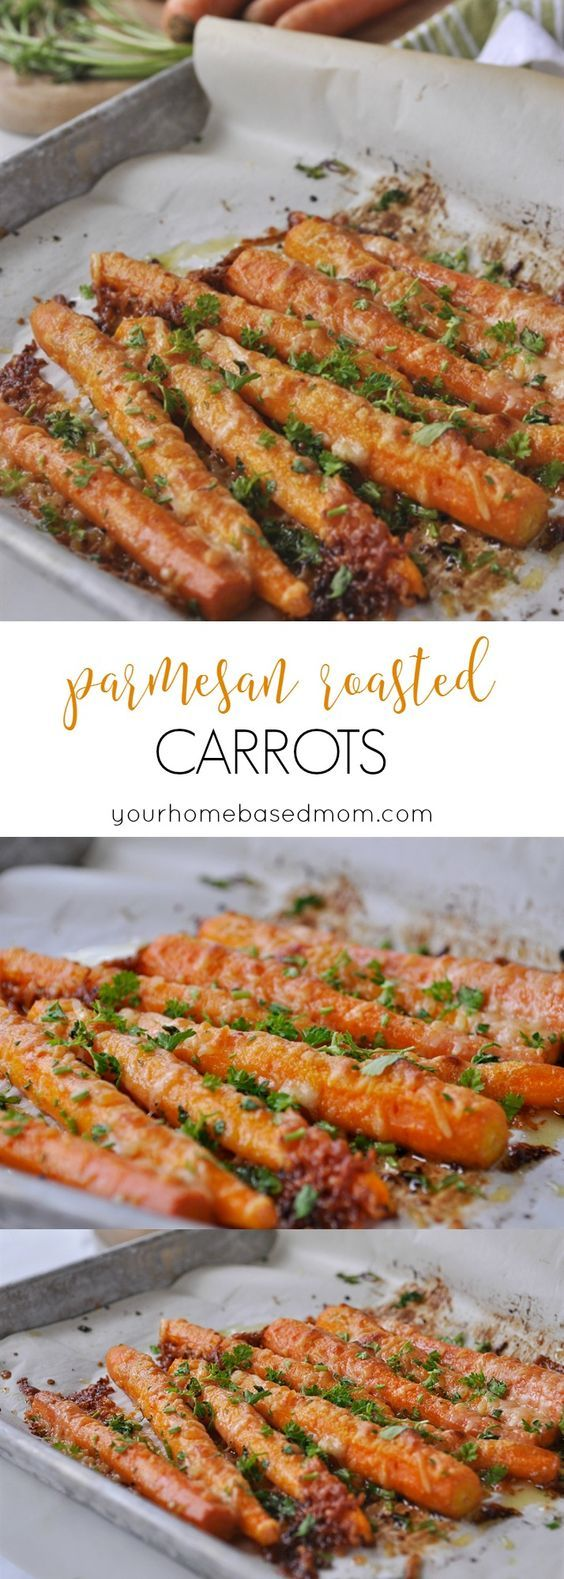 Parmesan Roasted Carrots #parmesan #roasted #carrots #veggies #vegetarianrecipes #vegetarian #veganrecipes